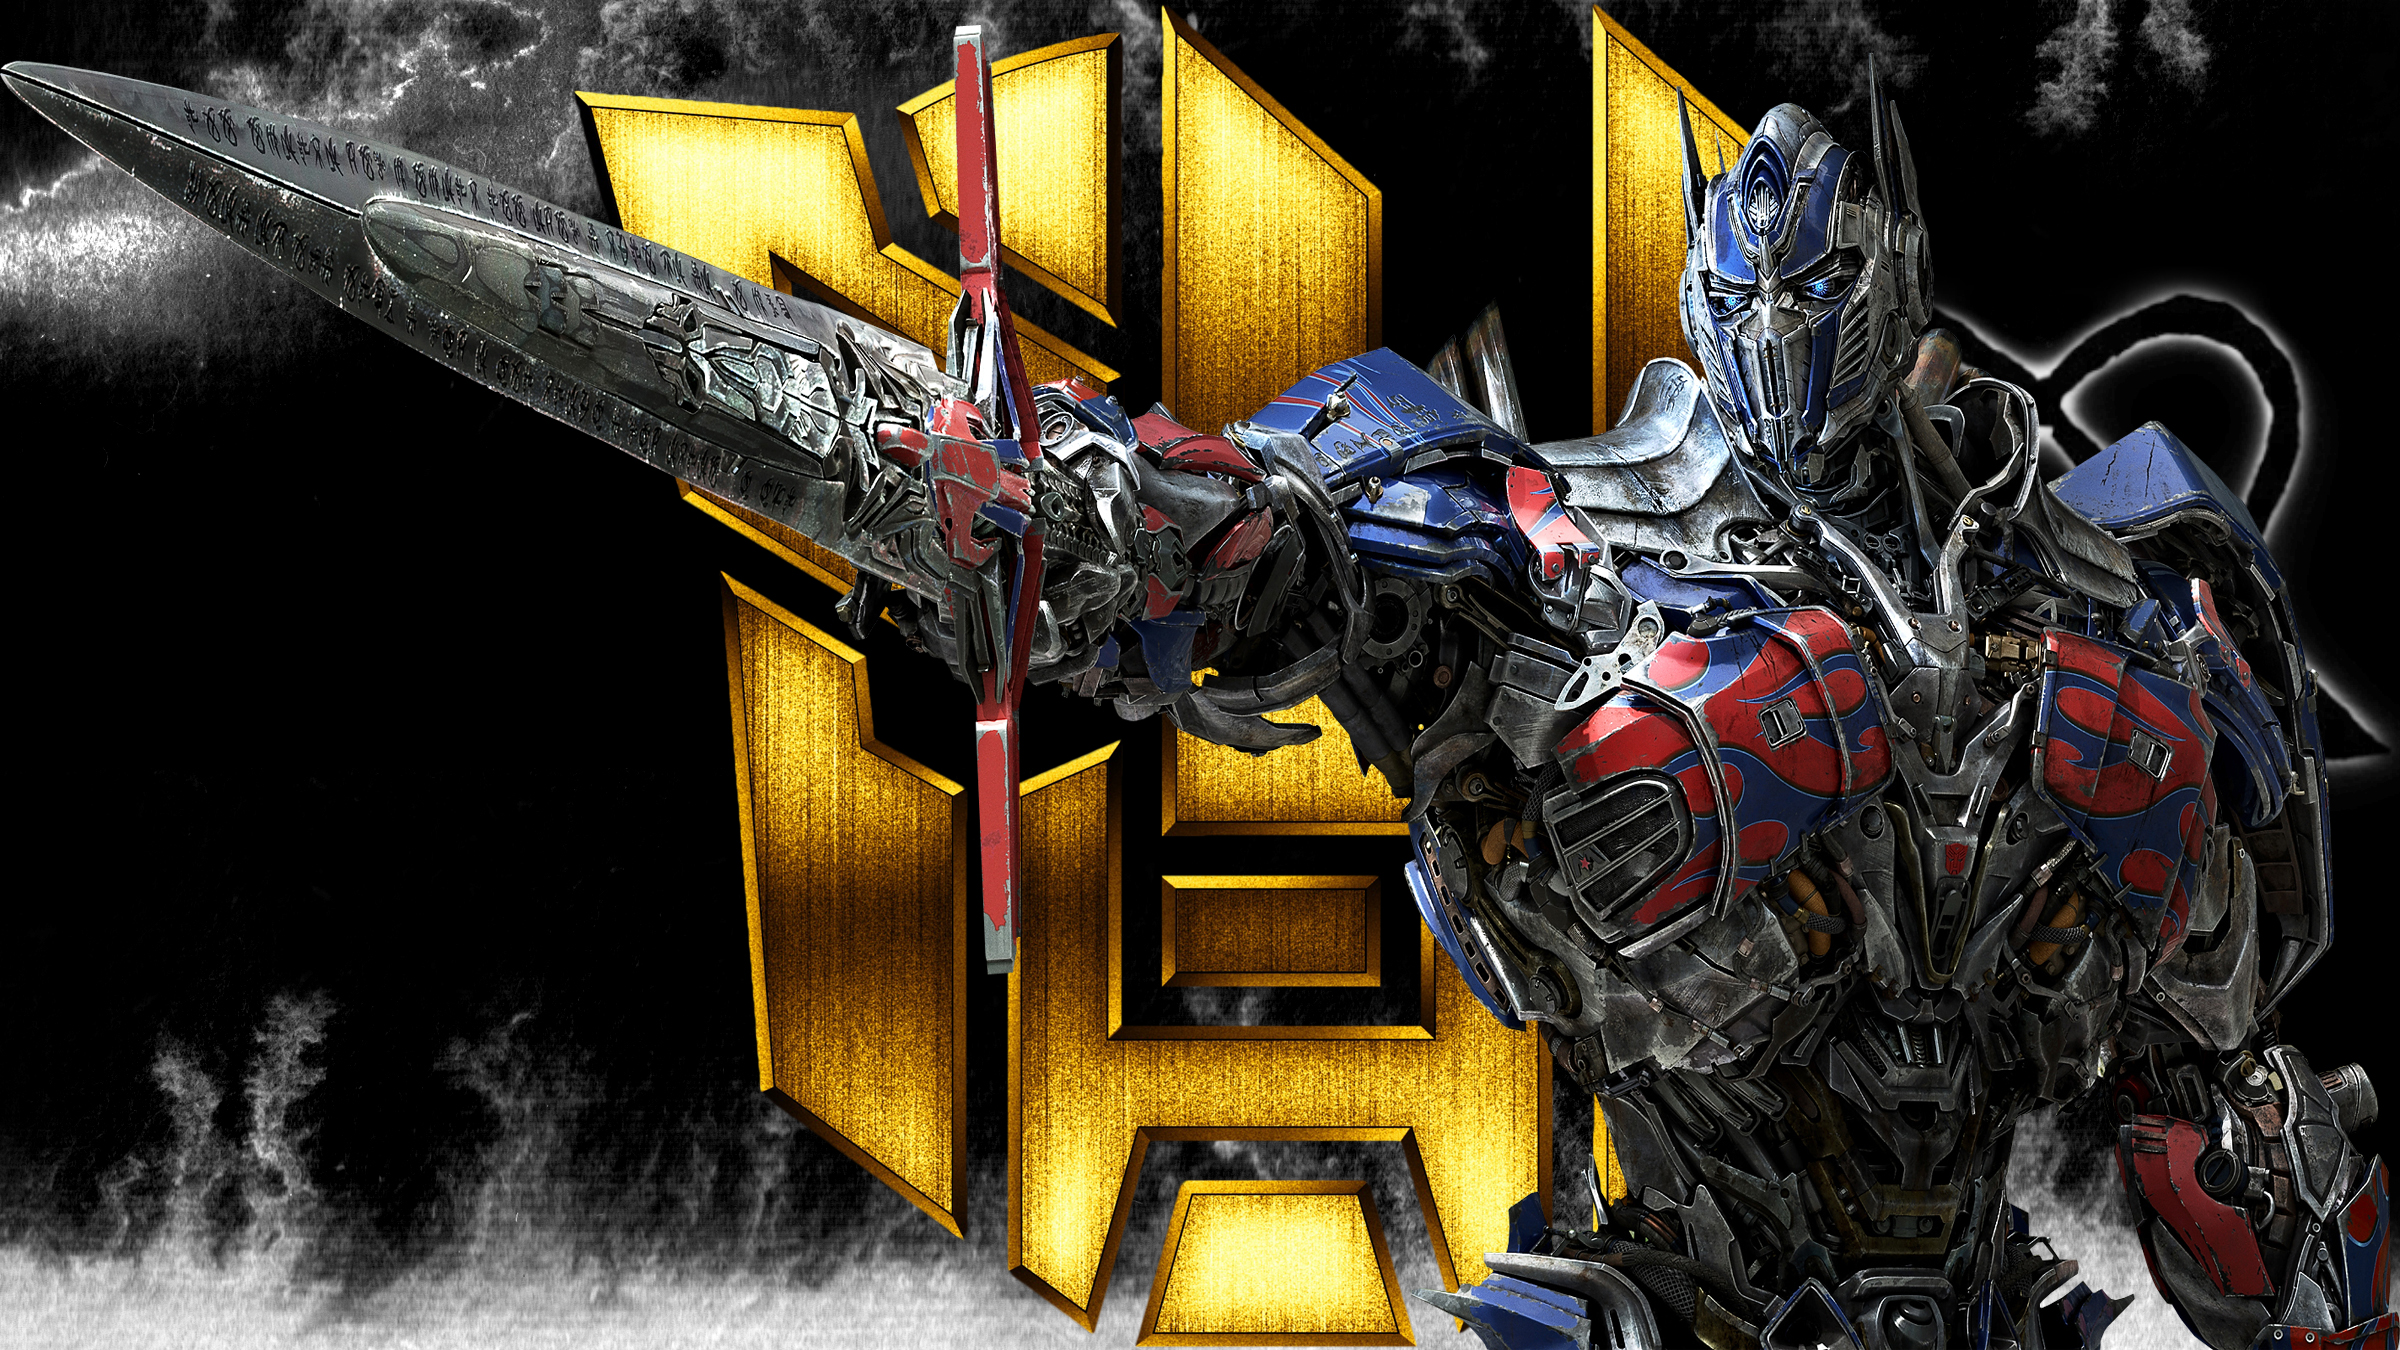 TF 4 Age Of Extinction Optimus Prime Wallpaper by RajivCR7 ...